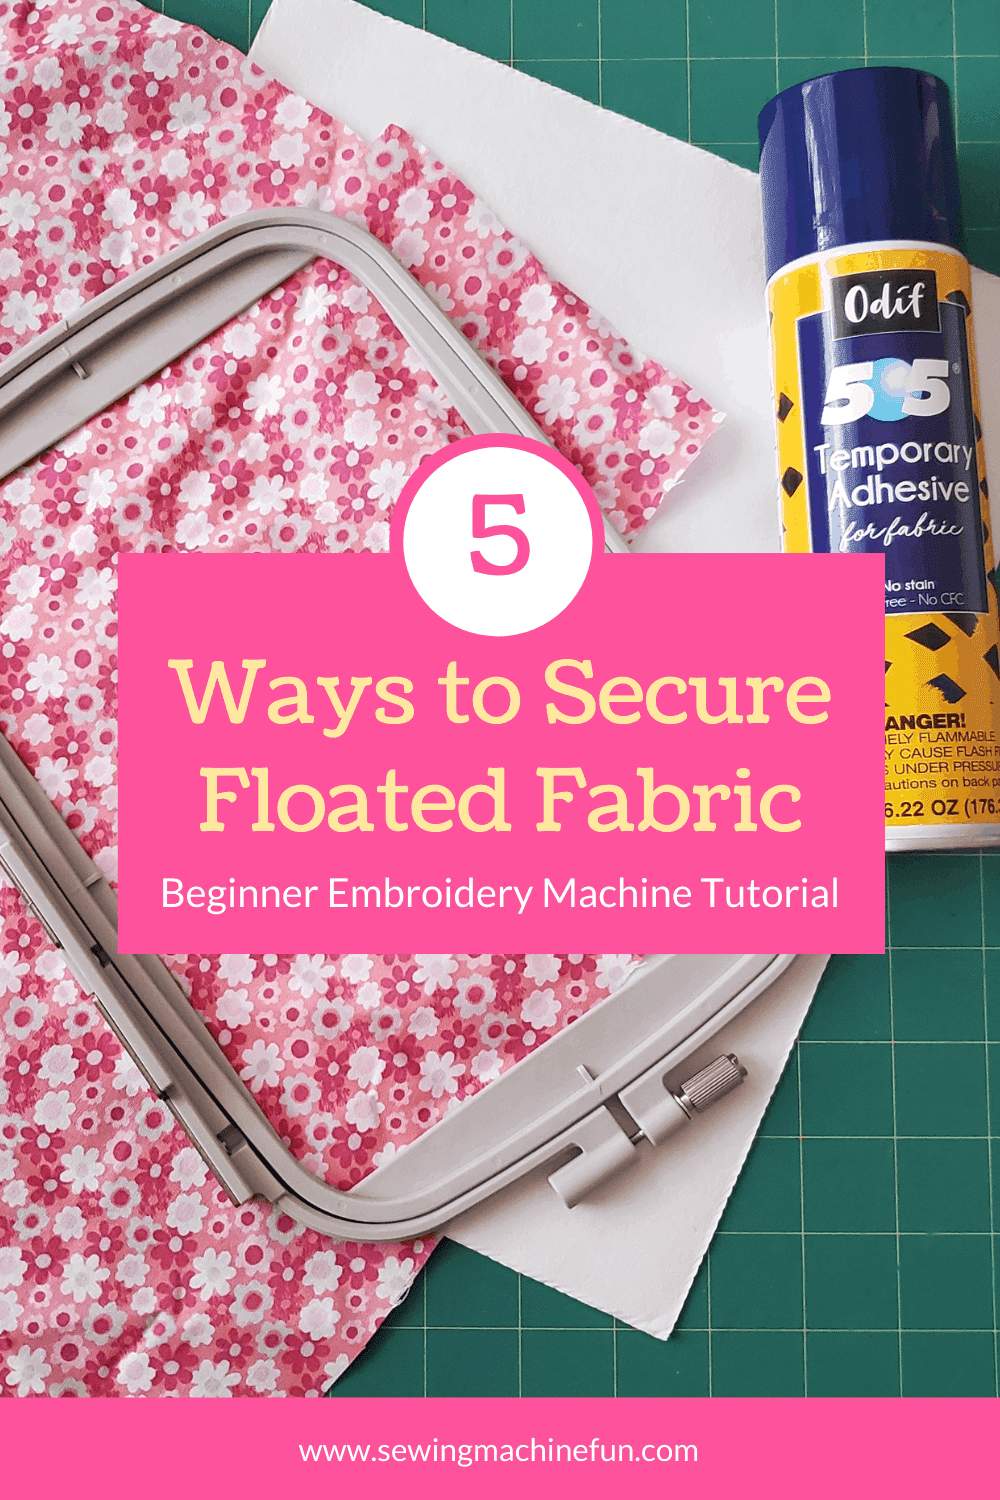 tips for securing floated fabric for machine embroidery